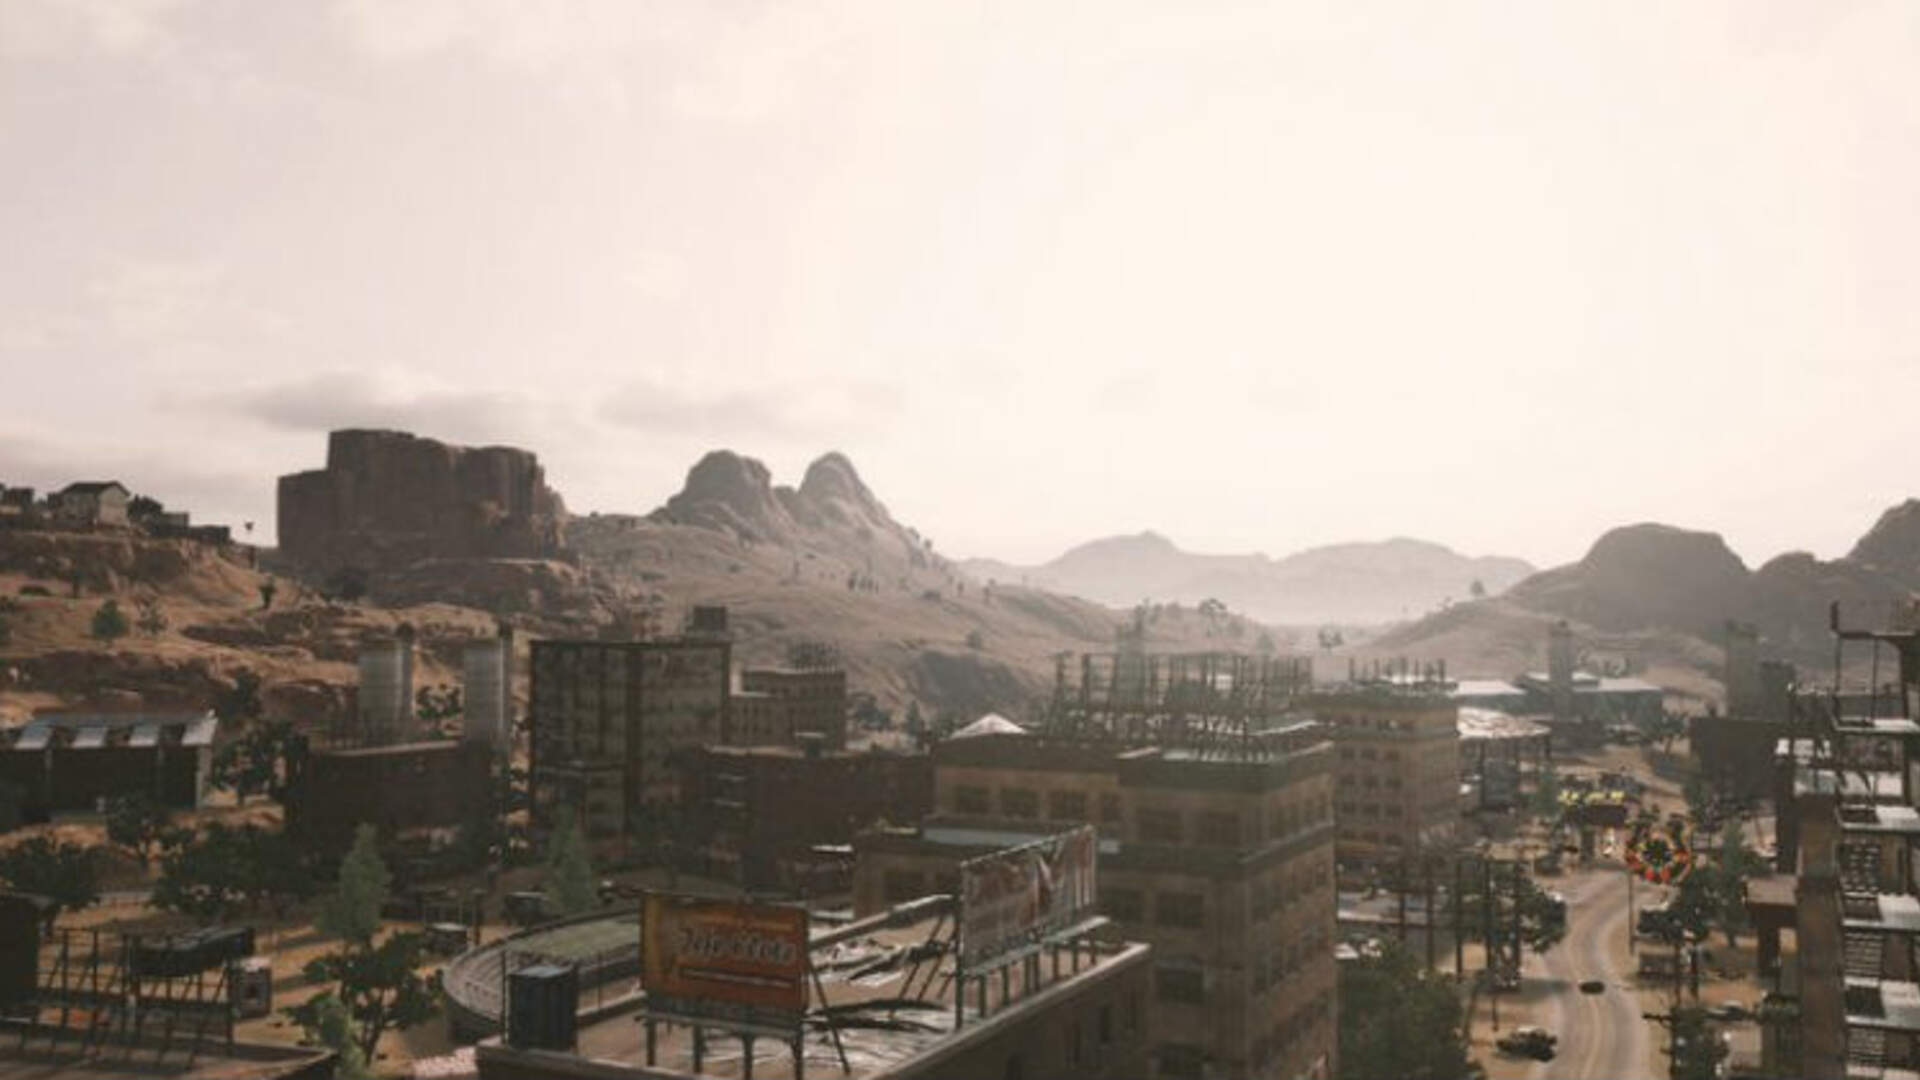 PUBG PC Update 19 Patch Notes, Dynamic Weather Added to Miramar and Erangel